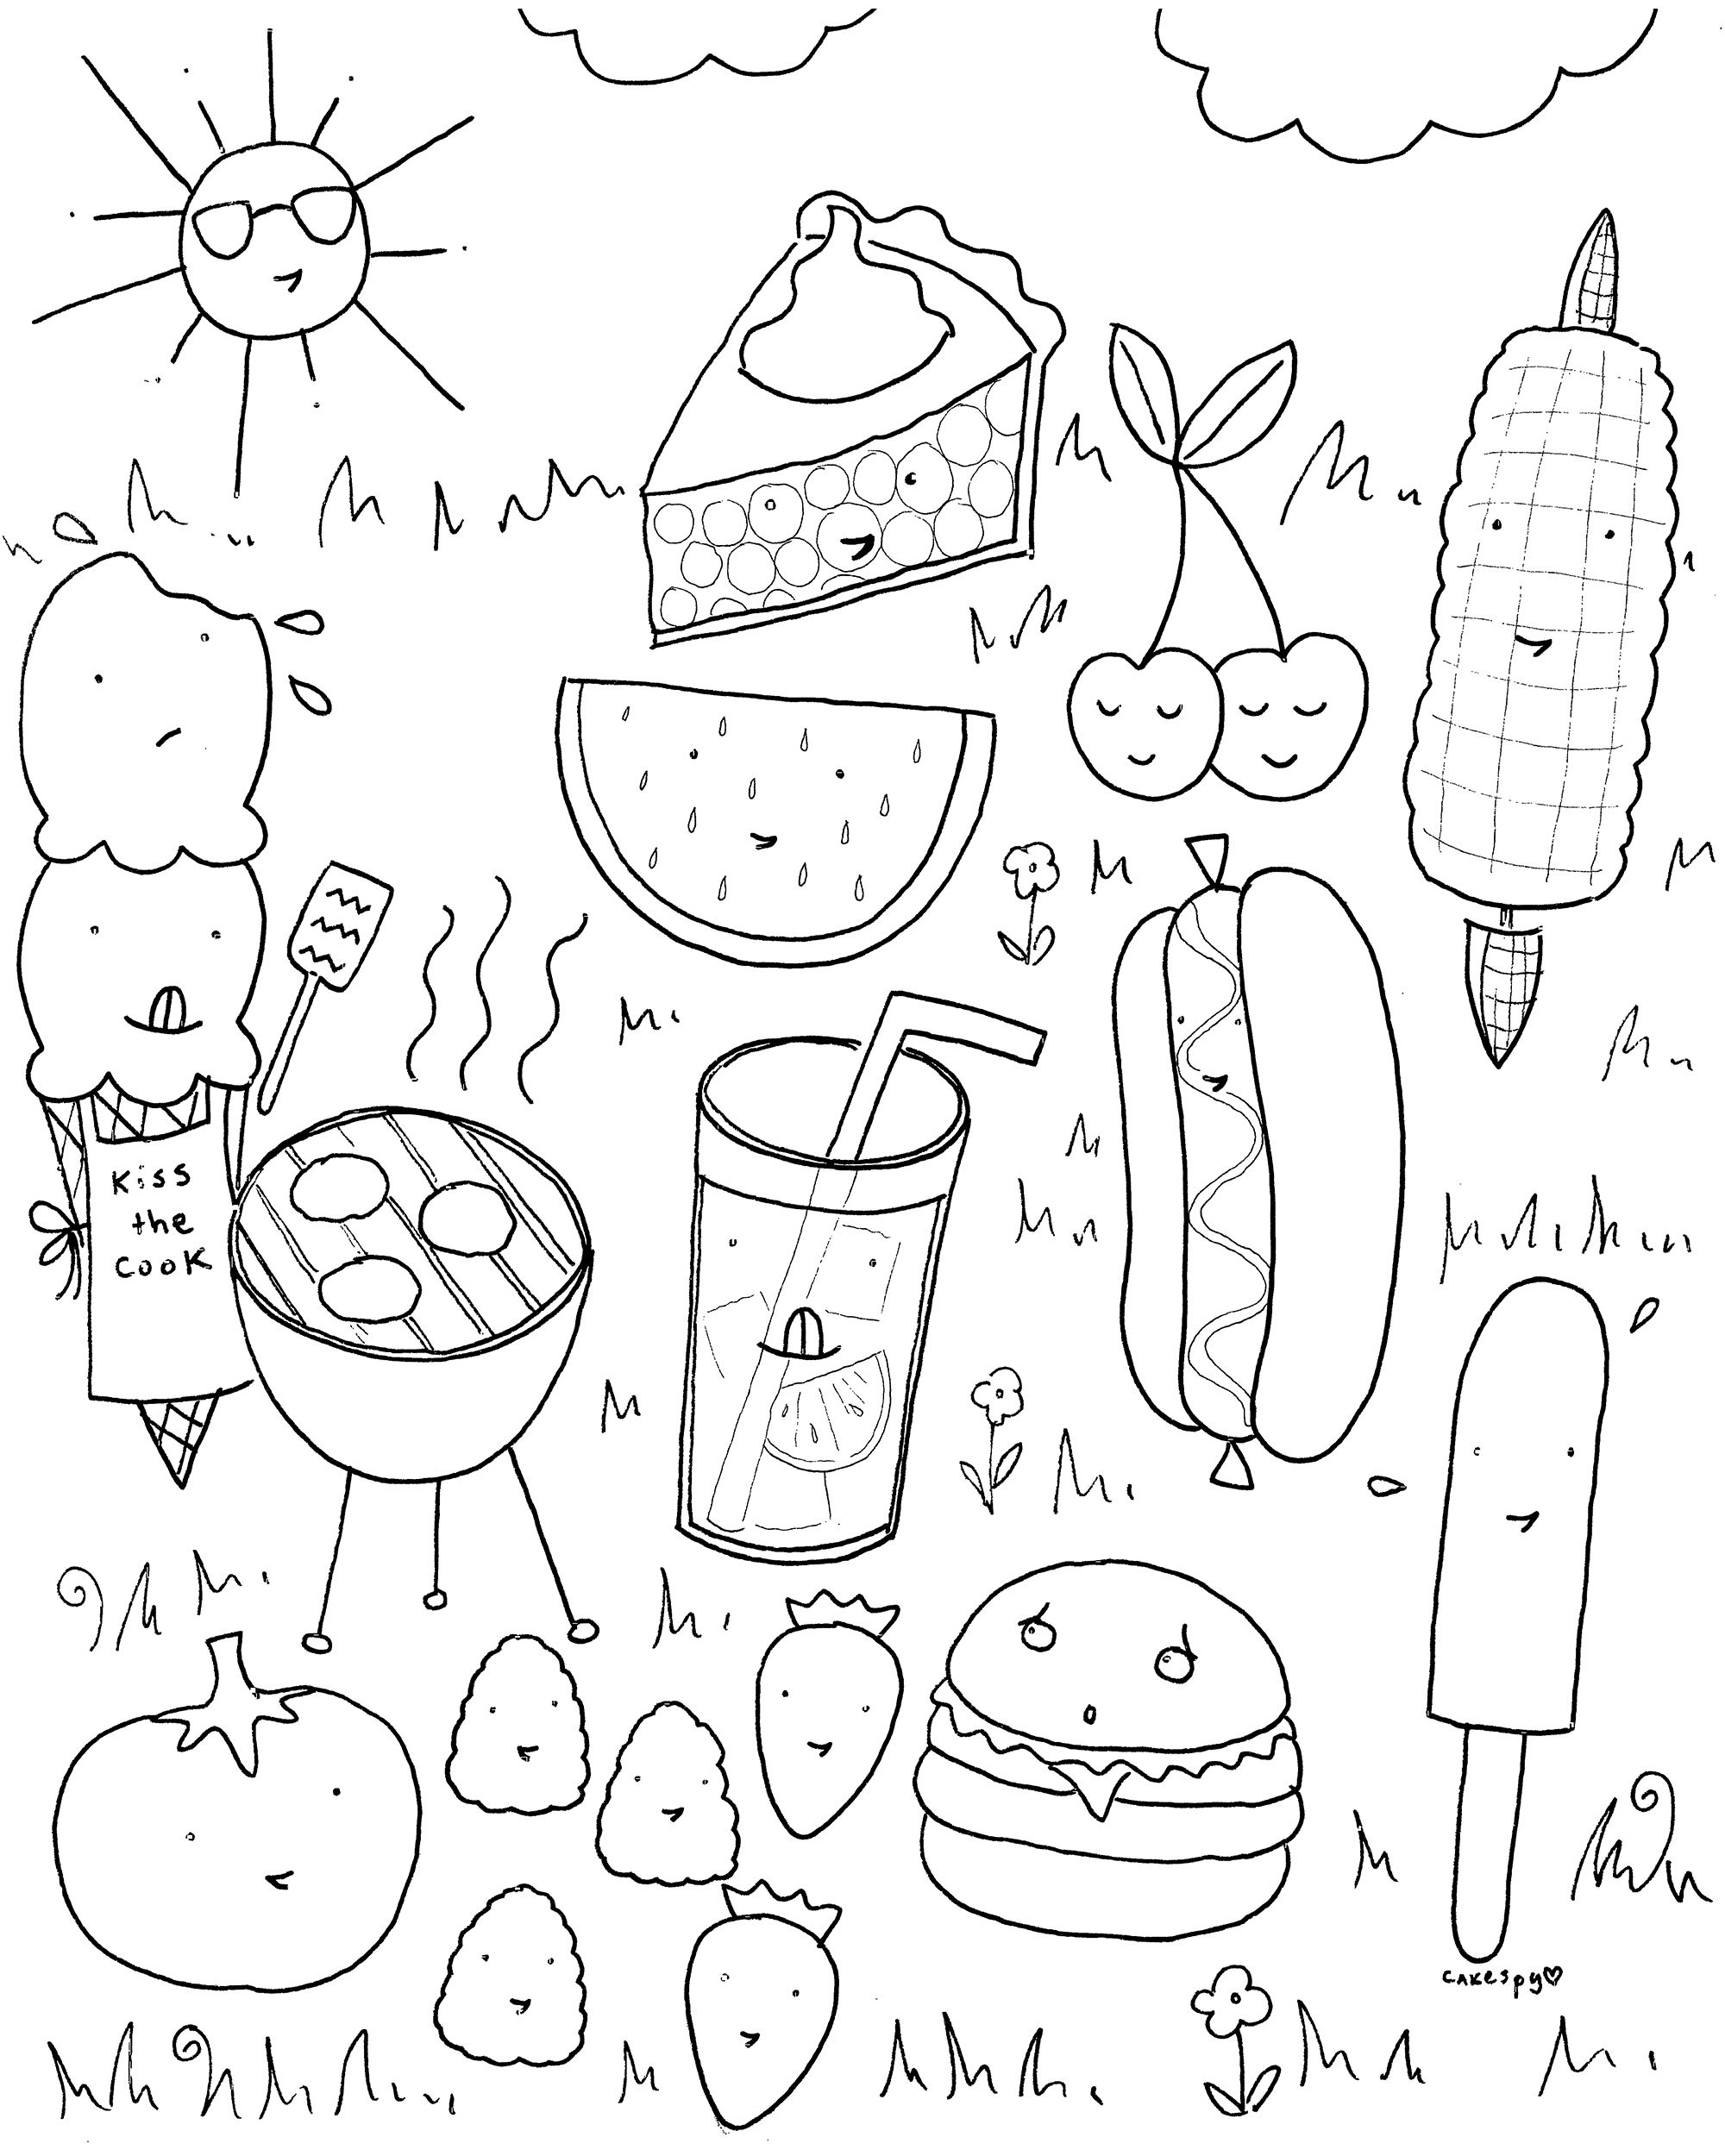 Sommer Ausmalbilder Nicht Nur Fur Kinder Free Printable BBQ Summer Food Coloring Book Page